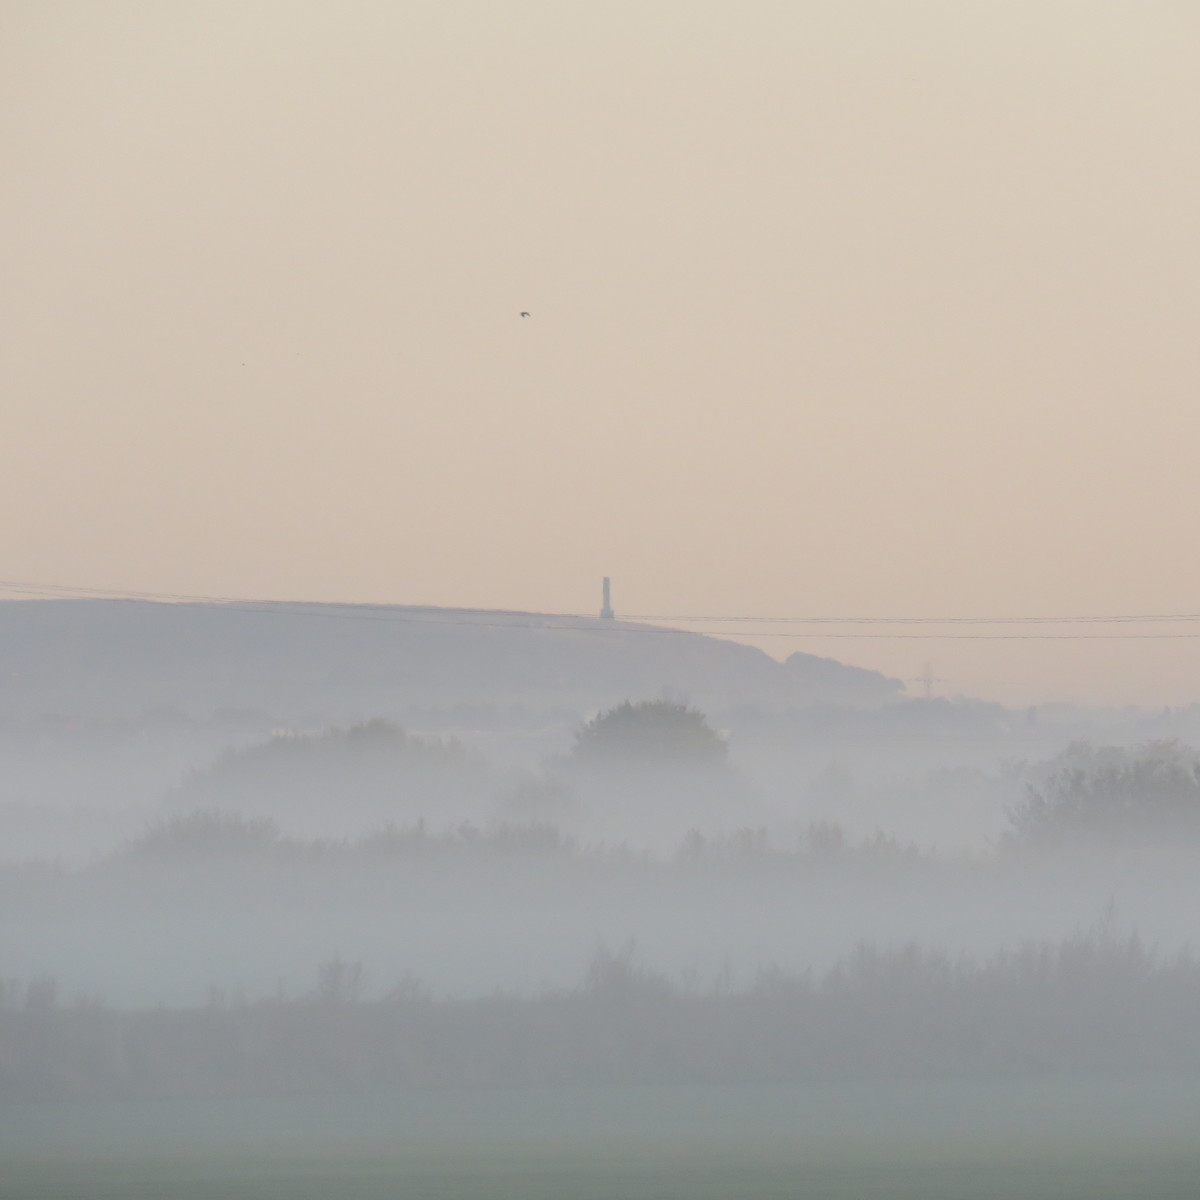 Peel Monument rises above the mists